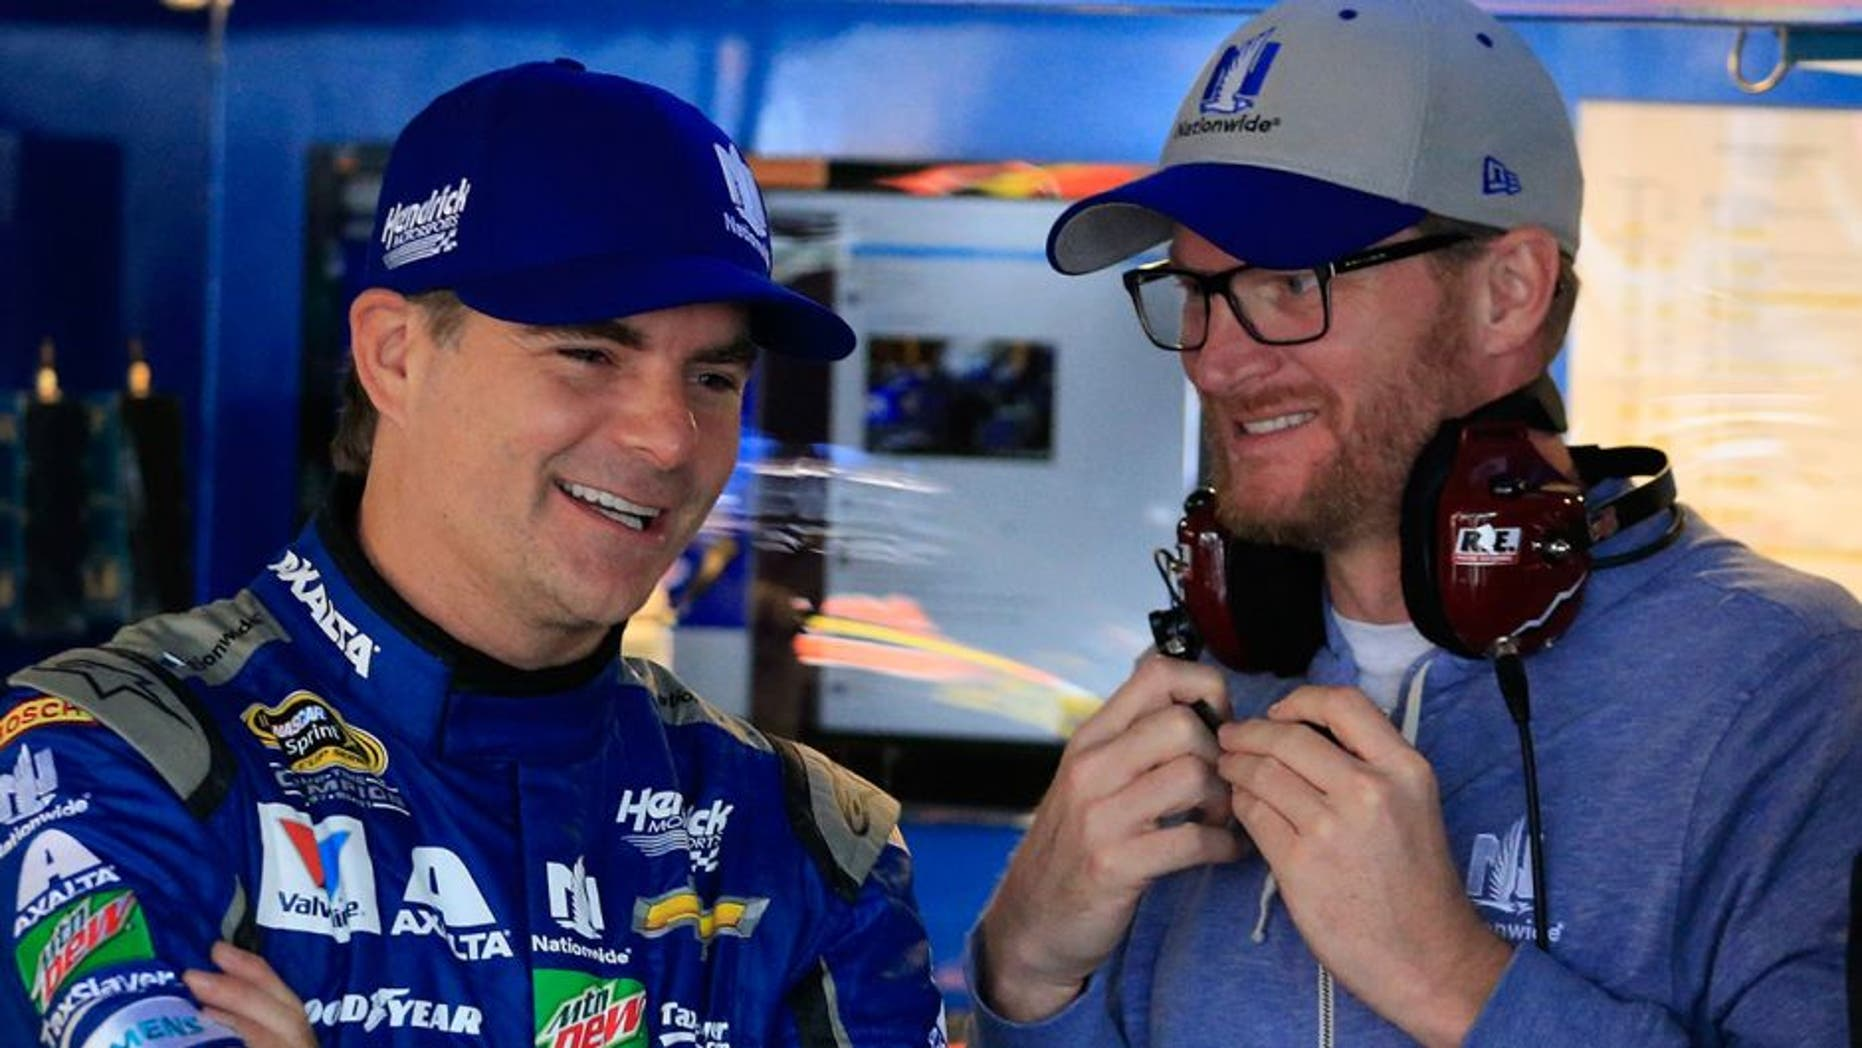 DOVER, DE - OCTOBER 01: Jeff Gordon (L), driver of the #88 Nationwide Chevrolet, talks with NASCAR Sprint Cup Series driver Dale Earnhardt Jr. in the garage area during practice for the NASCAR Sprint Cup Series Citizen Solider 400 at Dover International Speedway on October 1, 2016 in Dover, Delaware. (Photo by Chris Trotman/Getty Images)